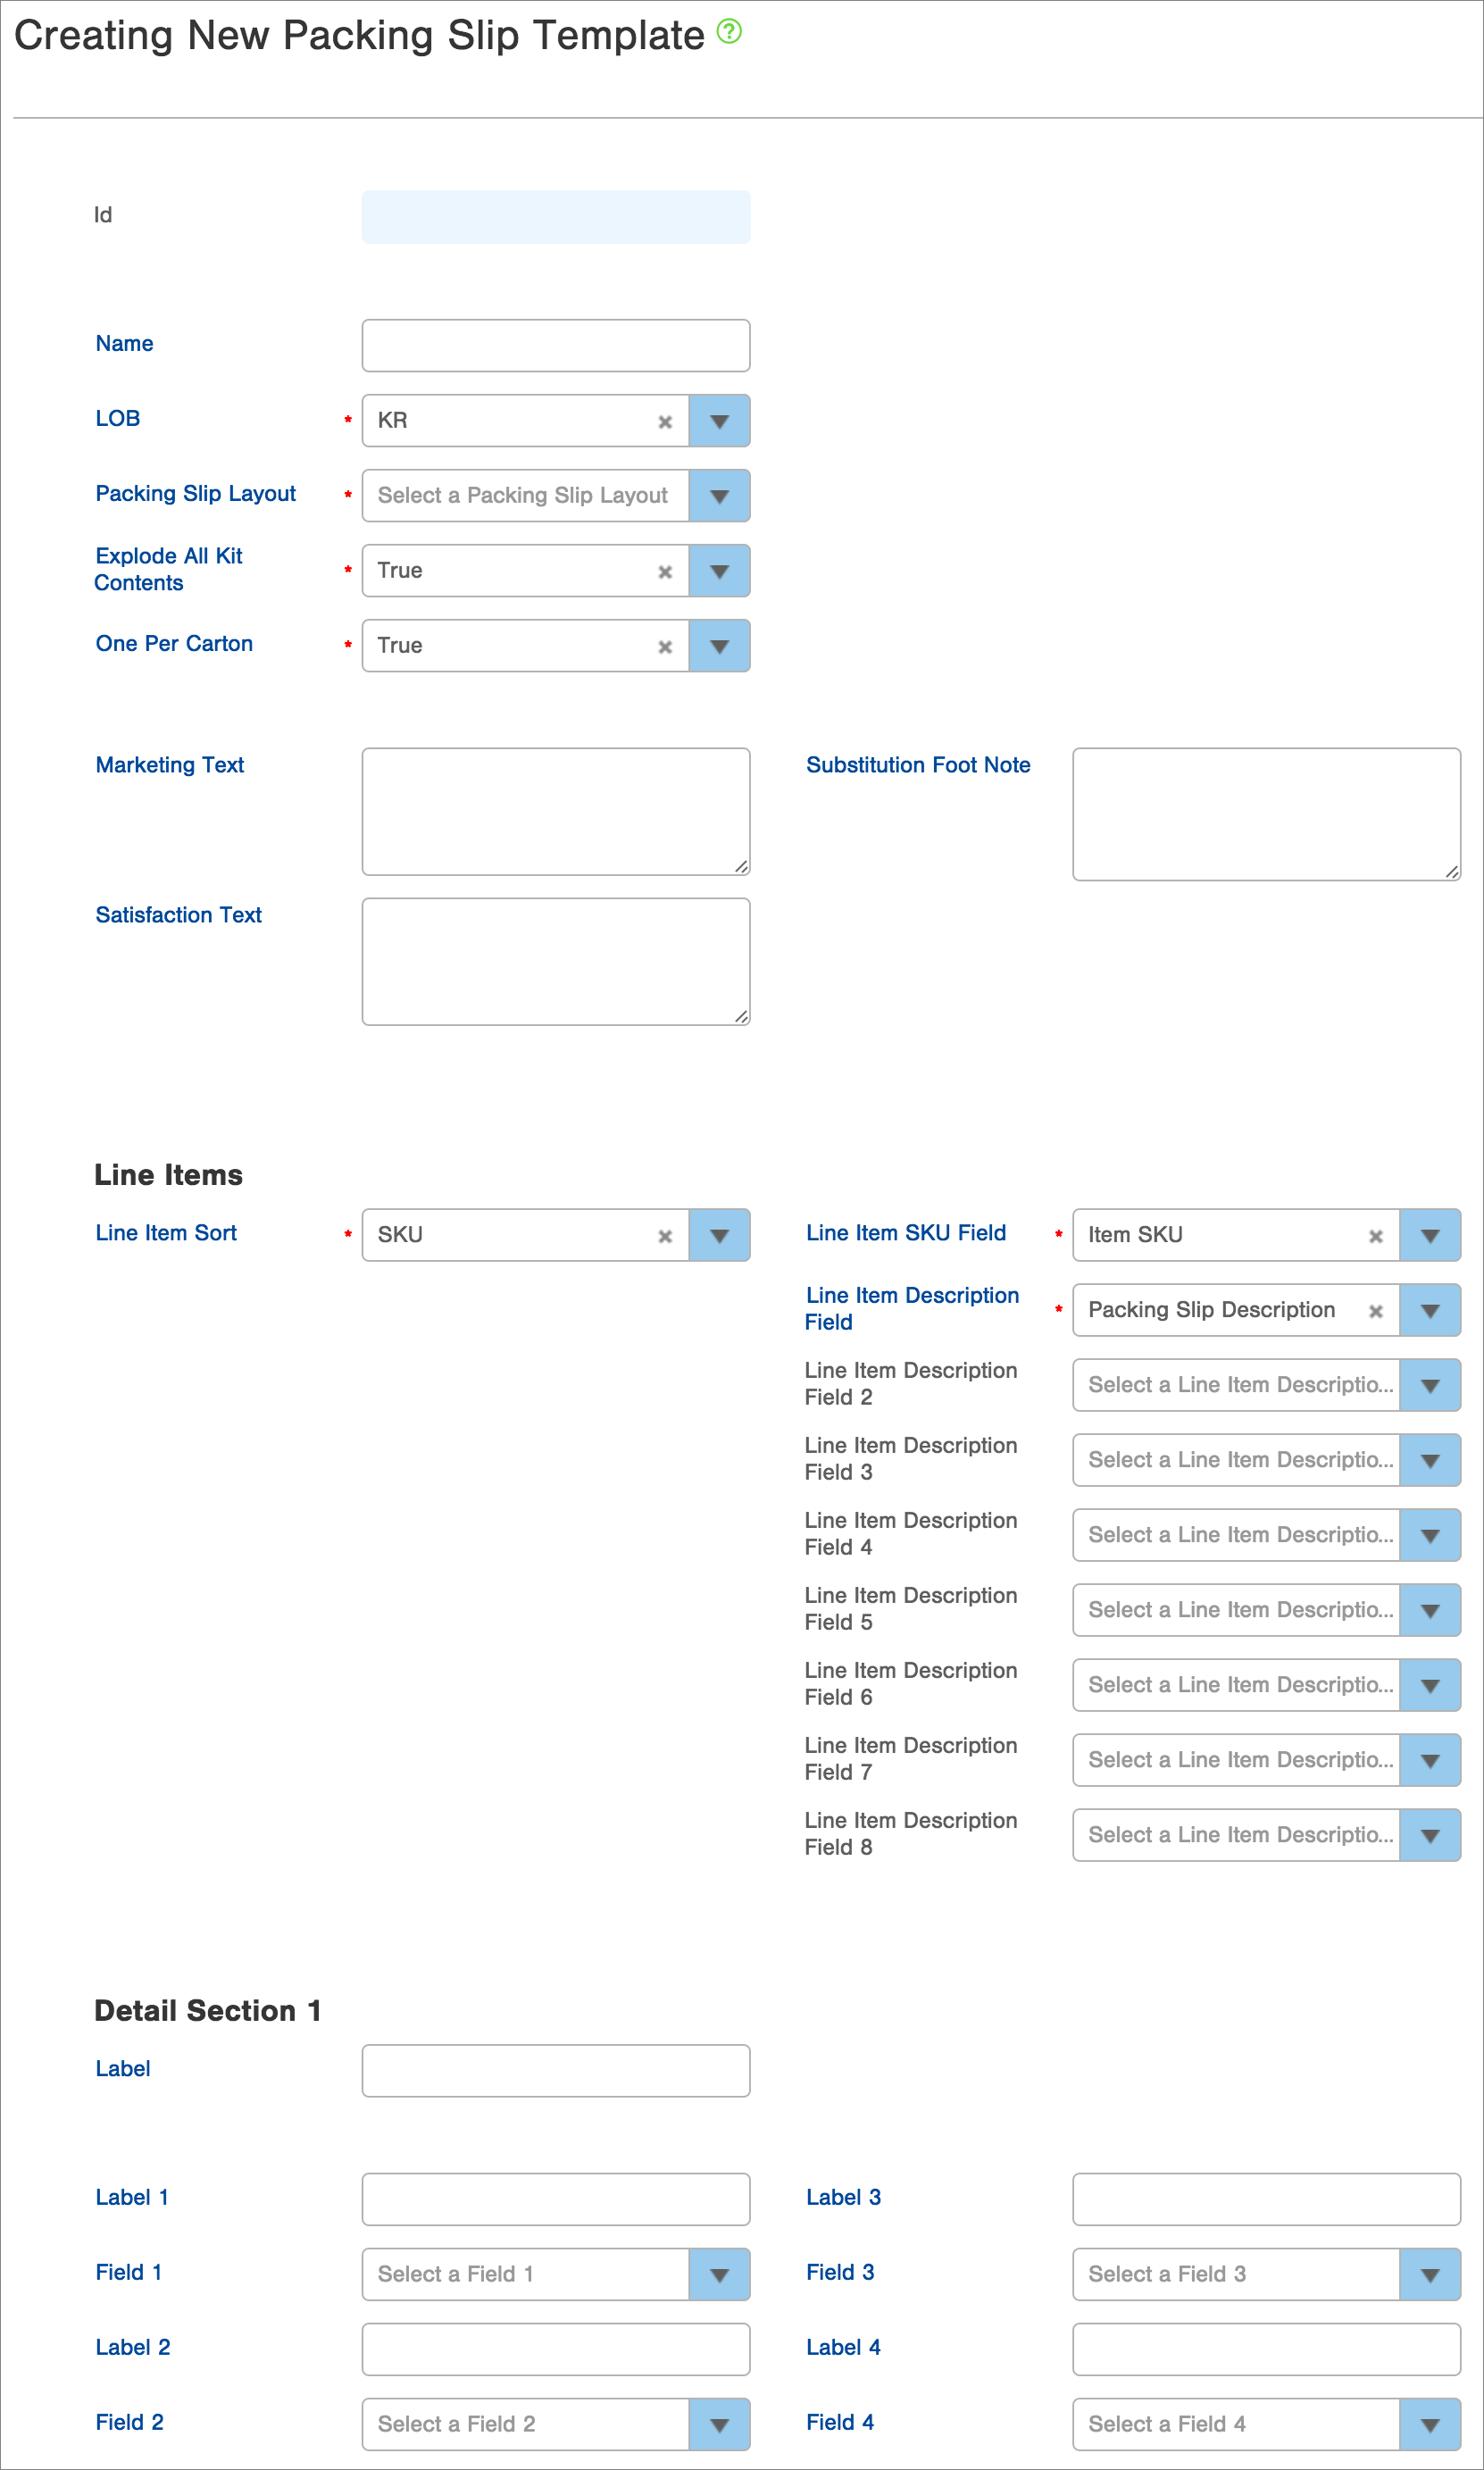 create and preview a packing slip template infoplus support packing slip template window appears 01m%20 %20create%20new%20merged png